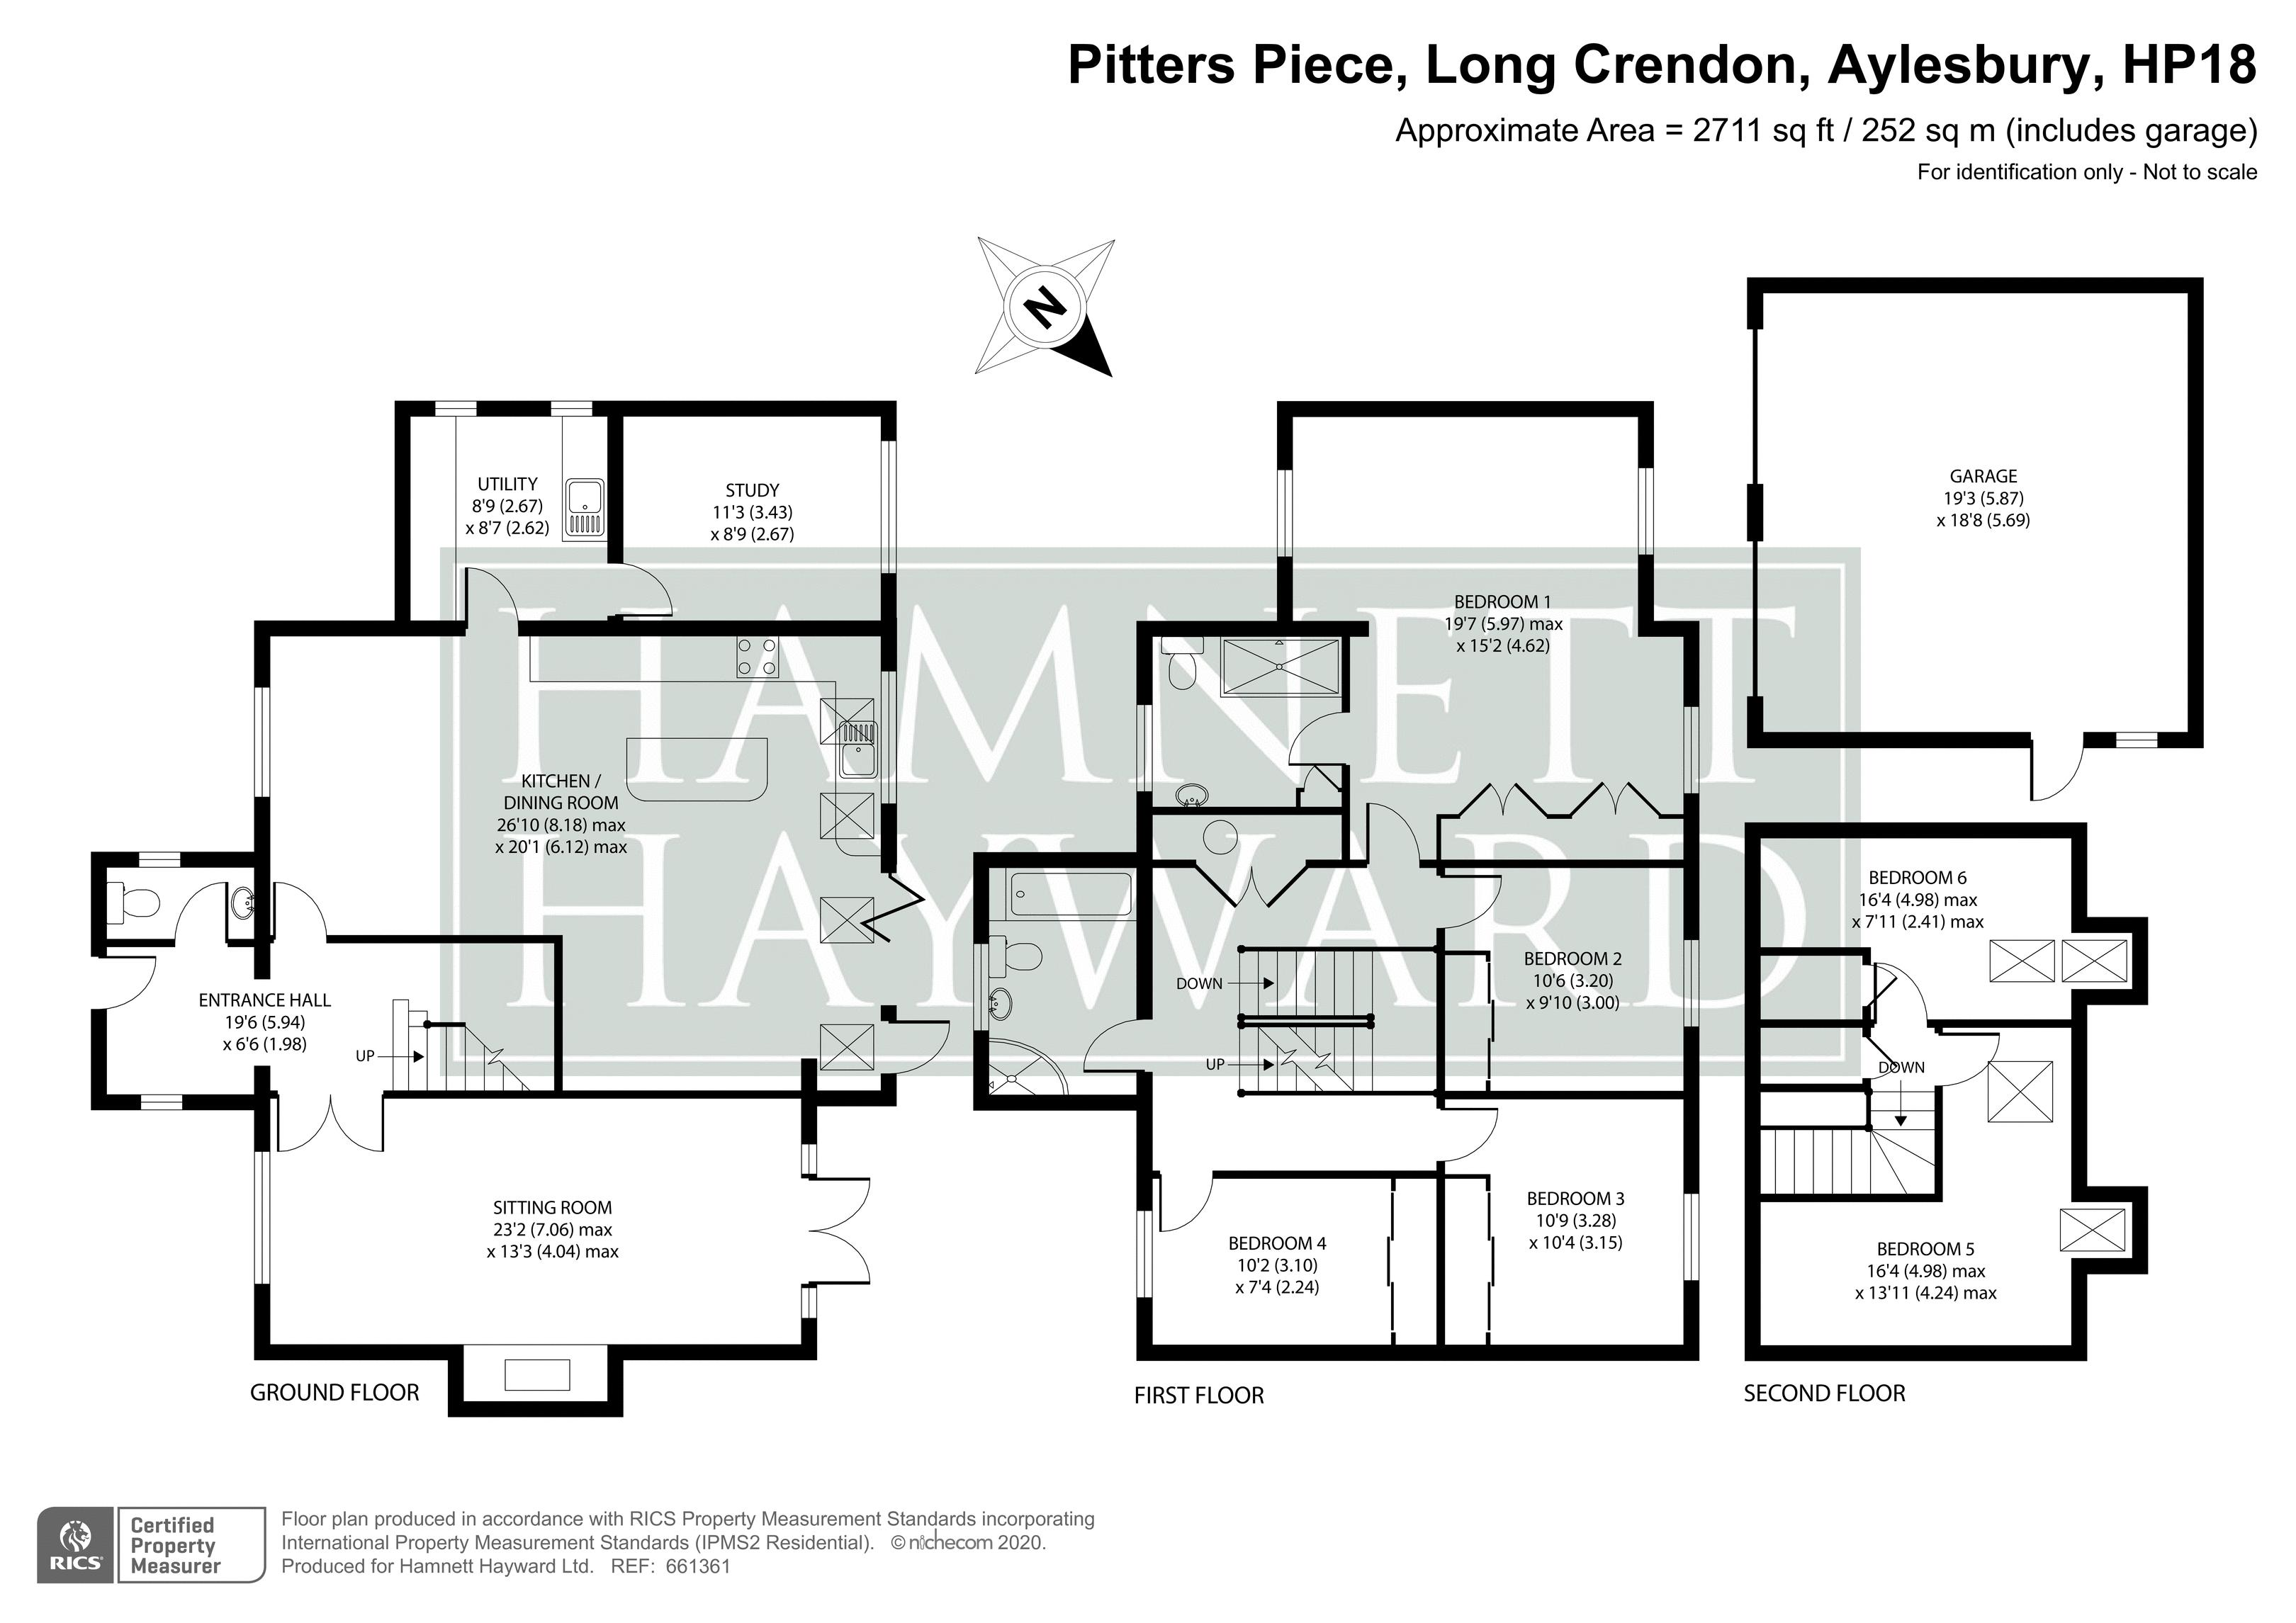 Pitters Piece Long Crendon